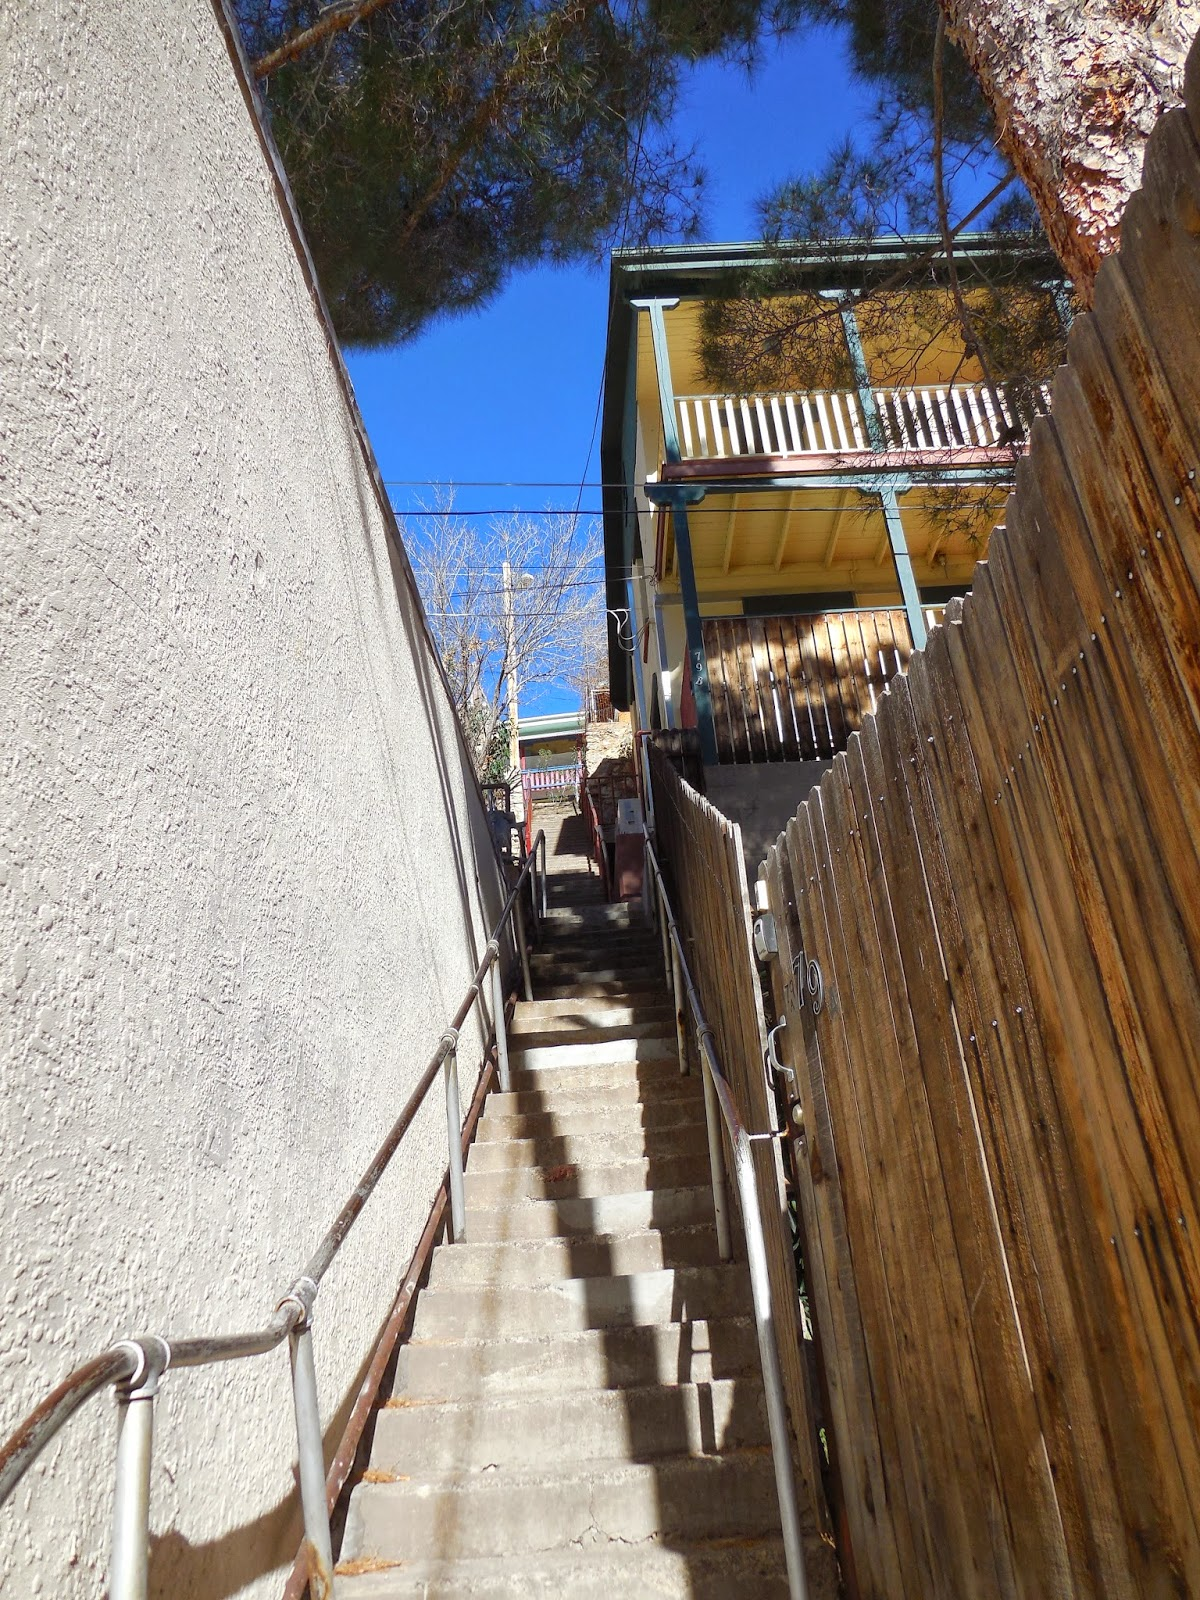 More of Bisbee's stairs